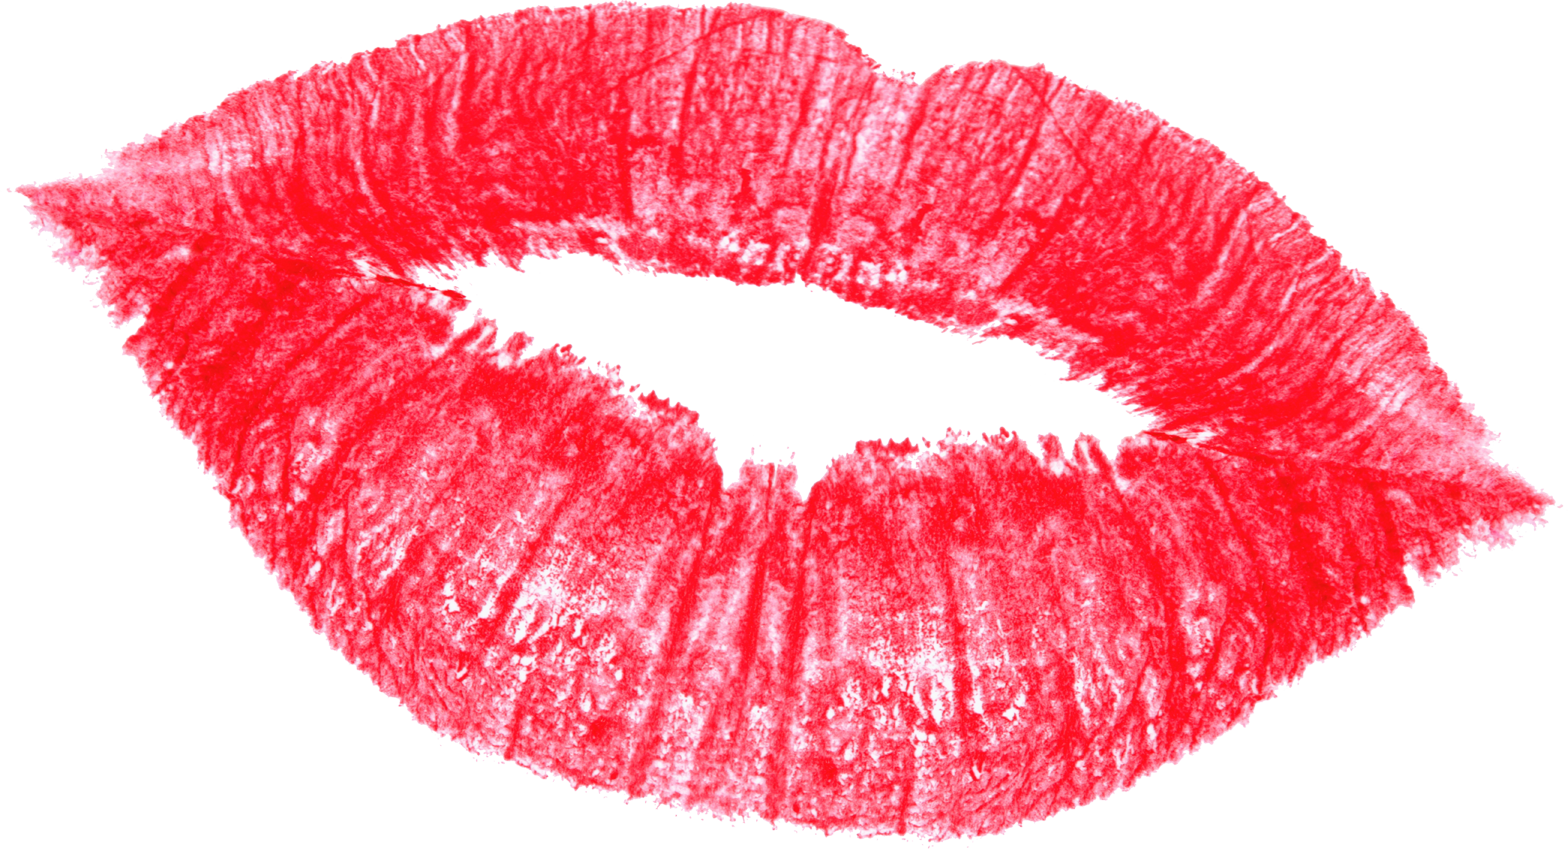 Hot Lip Kiss Images Free Download